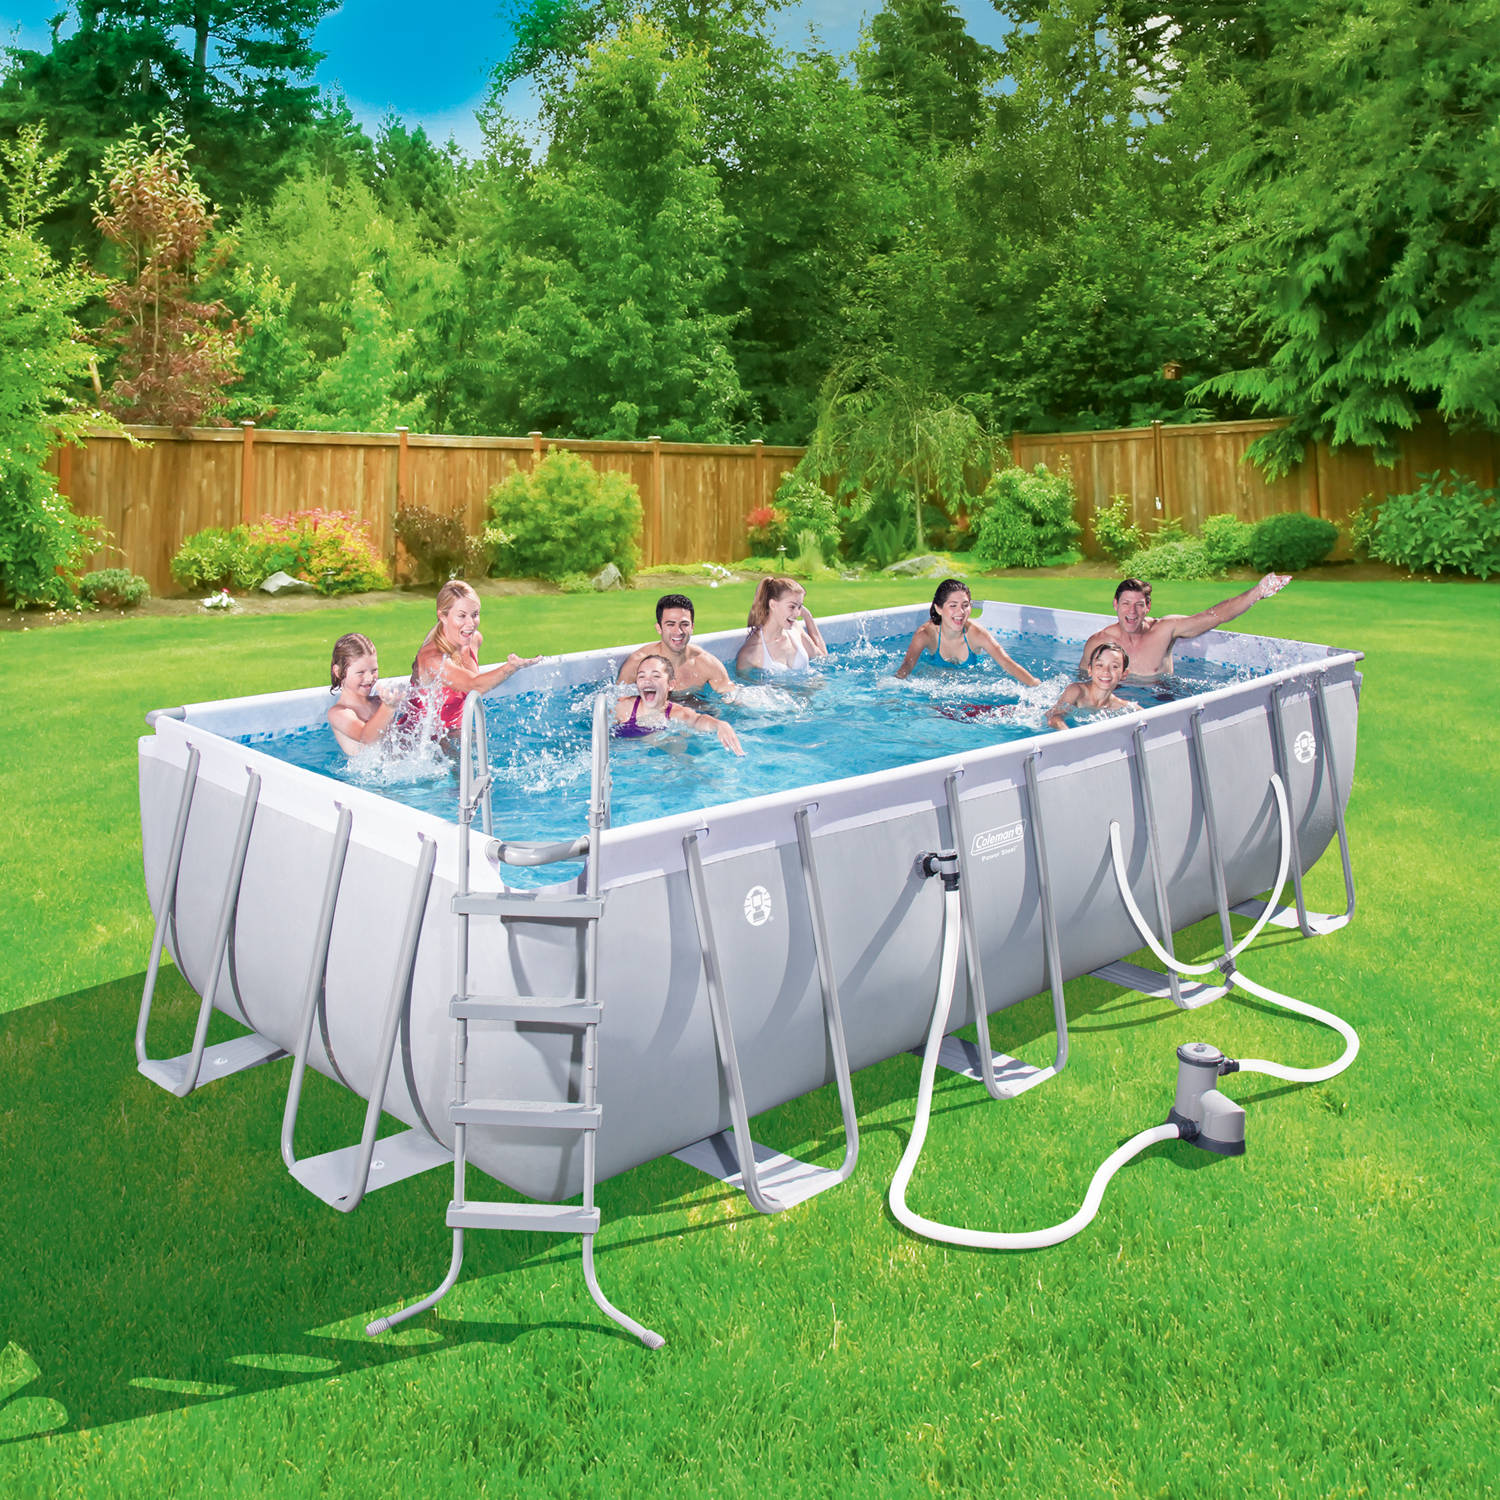 "Coleman Power Steel 18' x 9' x 48"" Rectangular Frame Swimming Pool Set"